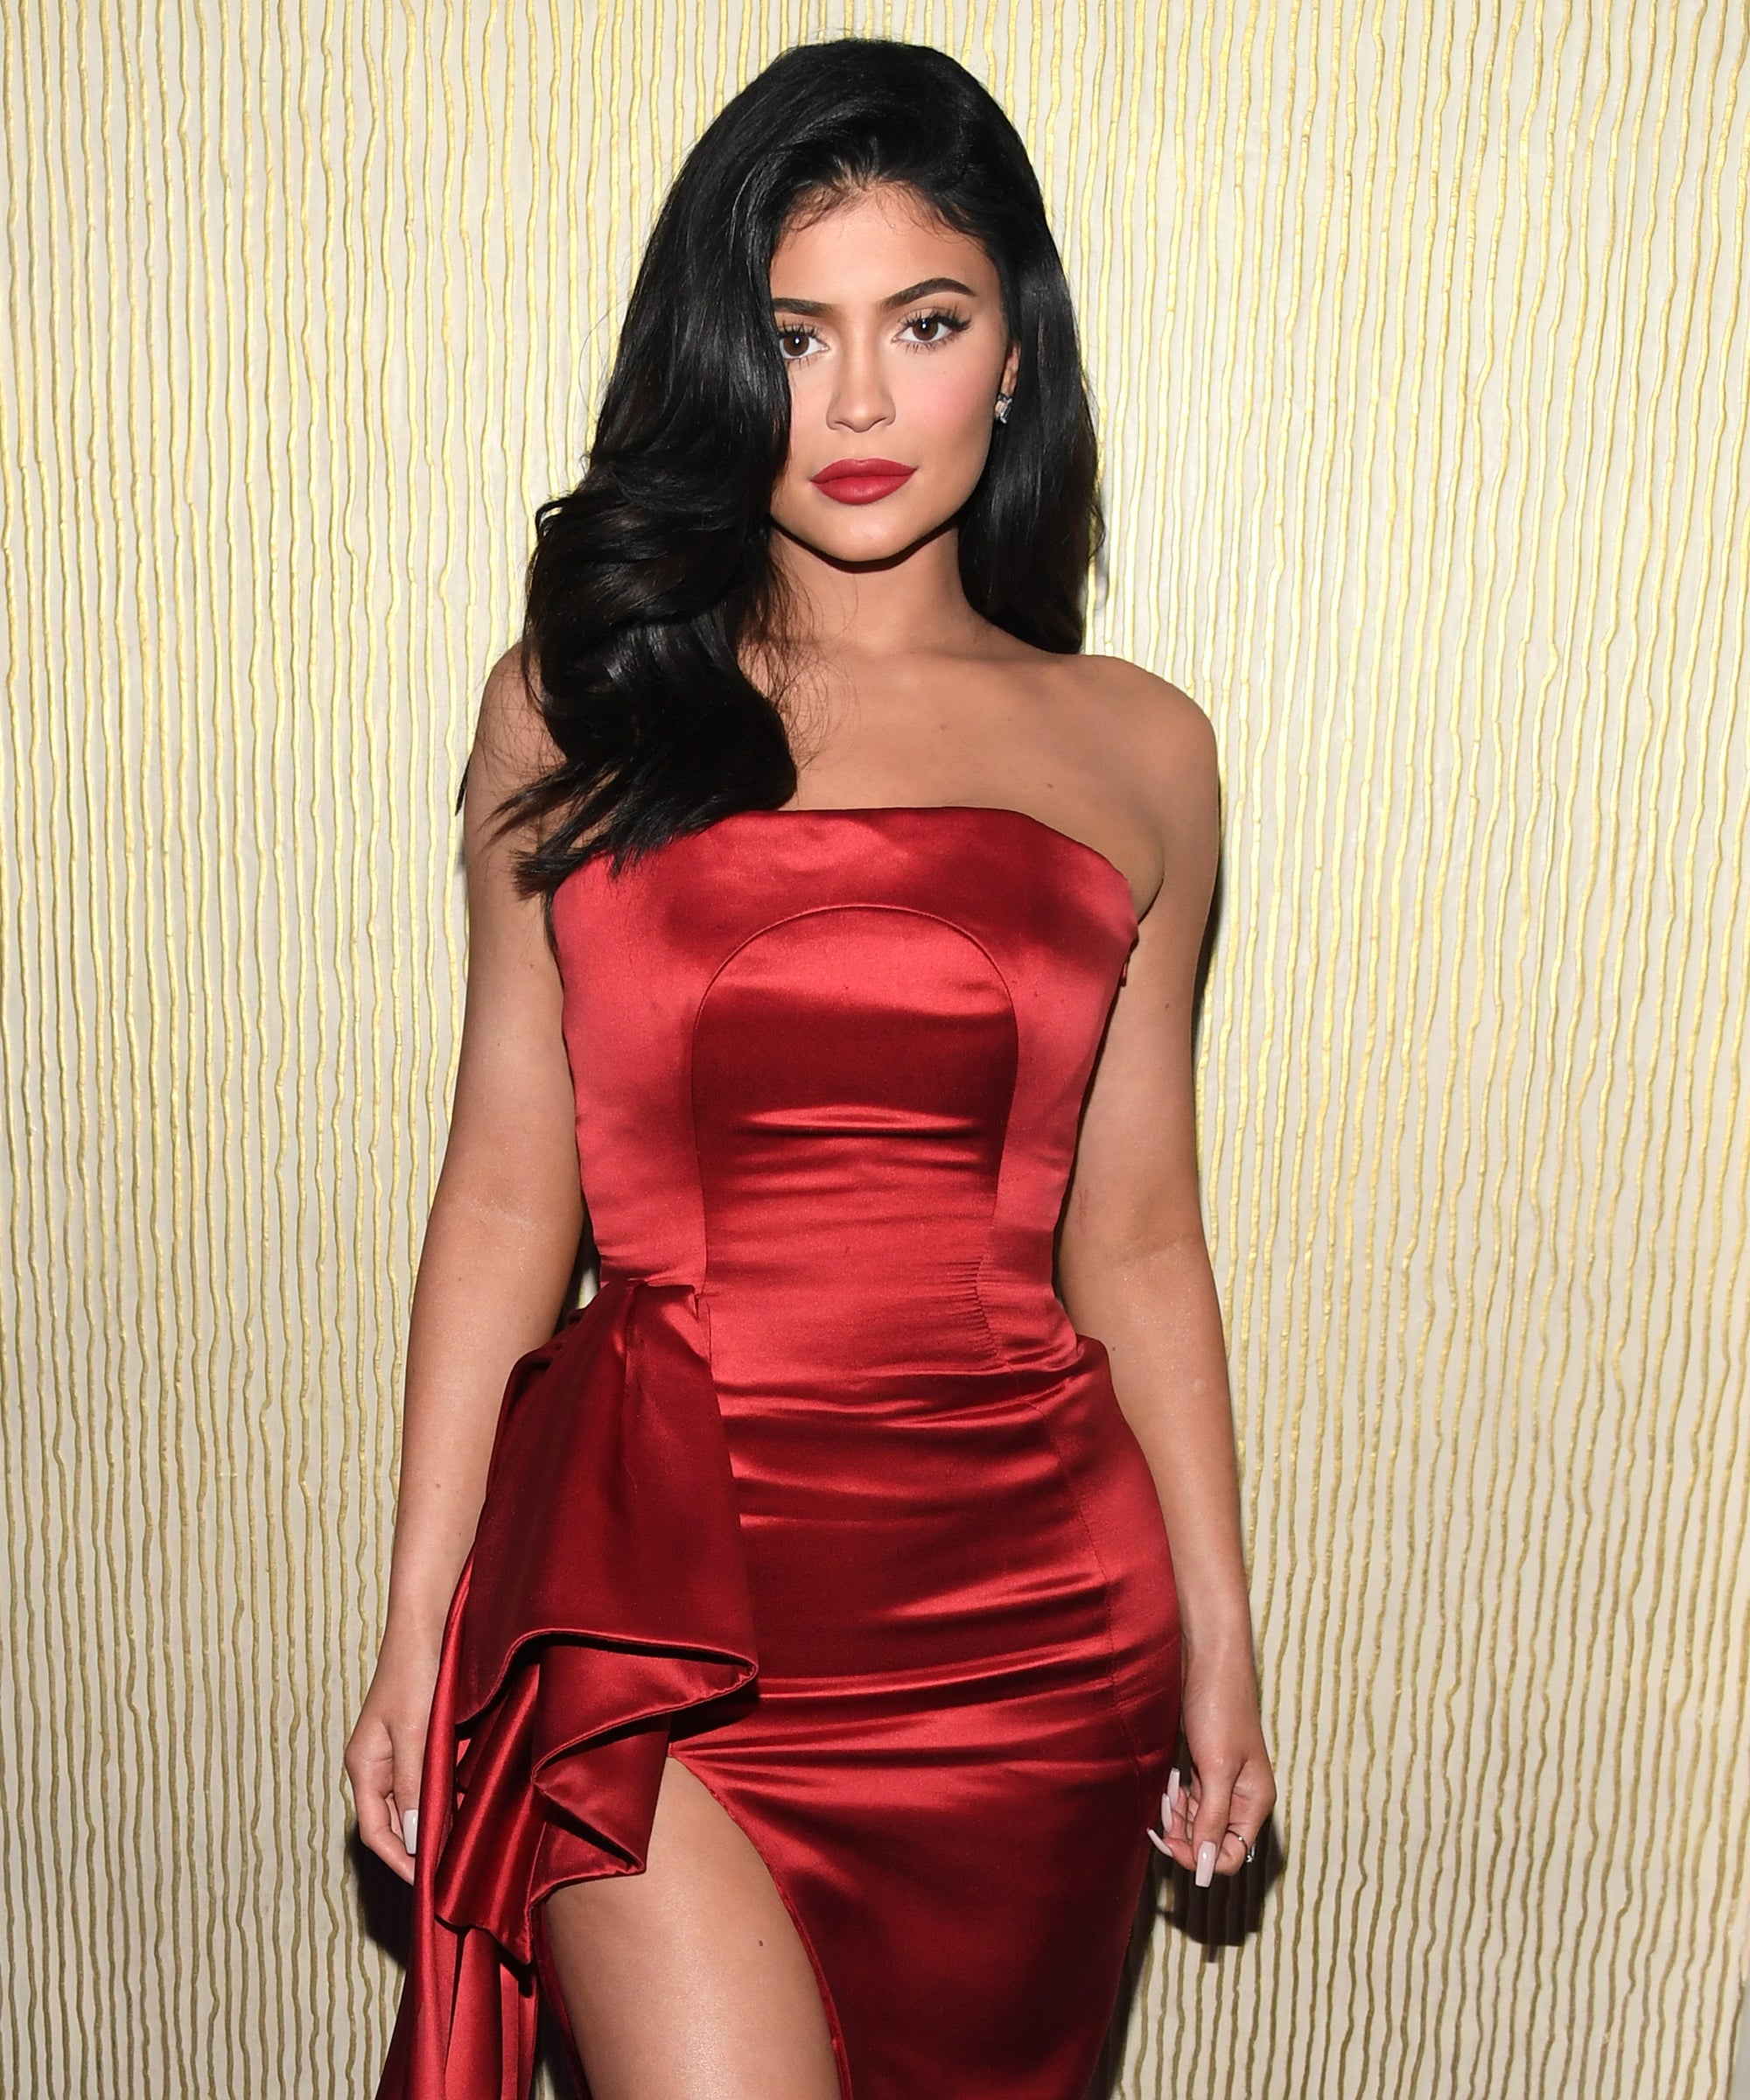 Kylie Jenner wie is ze dating